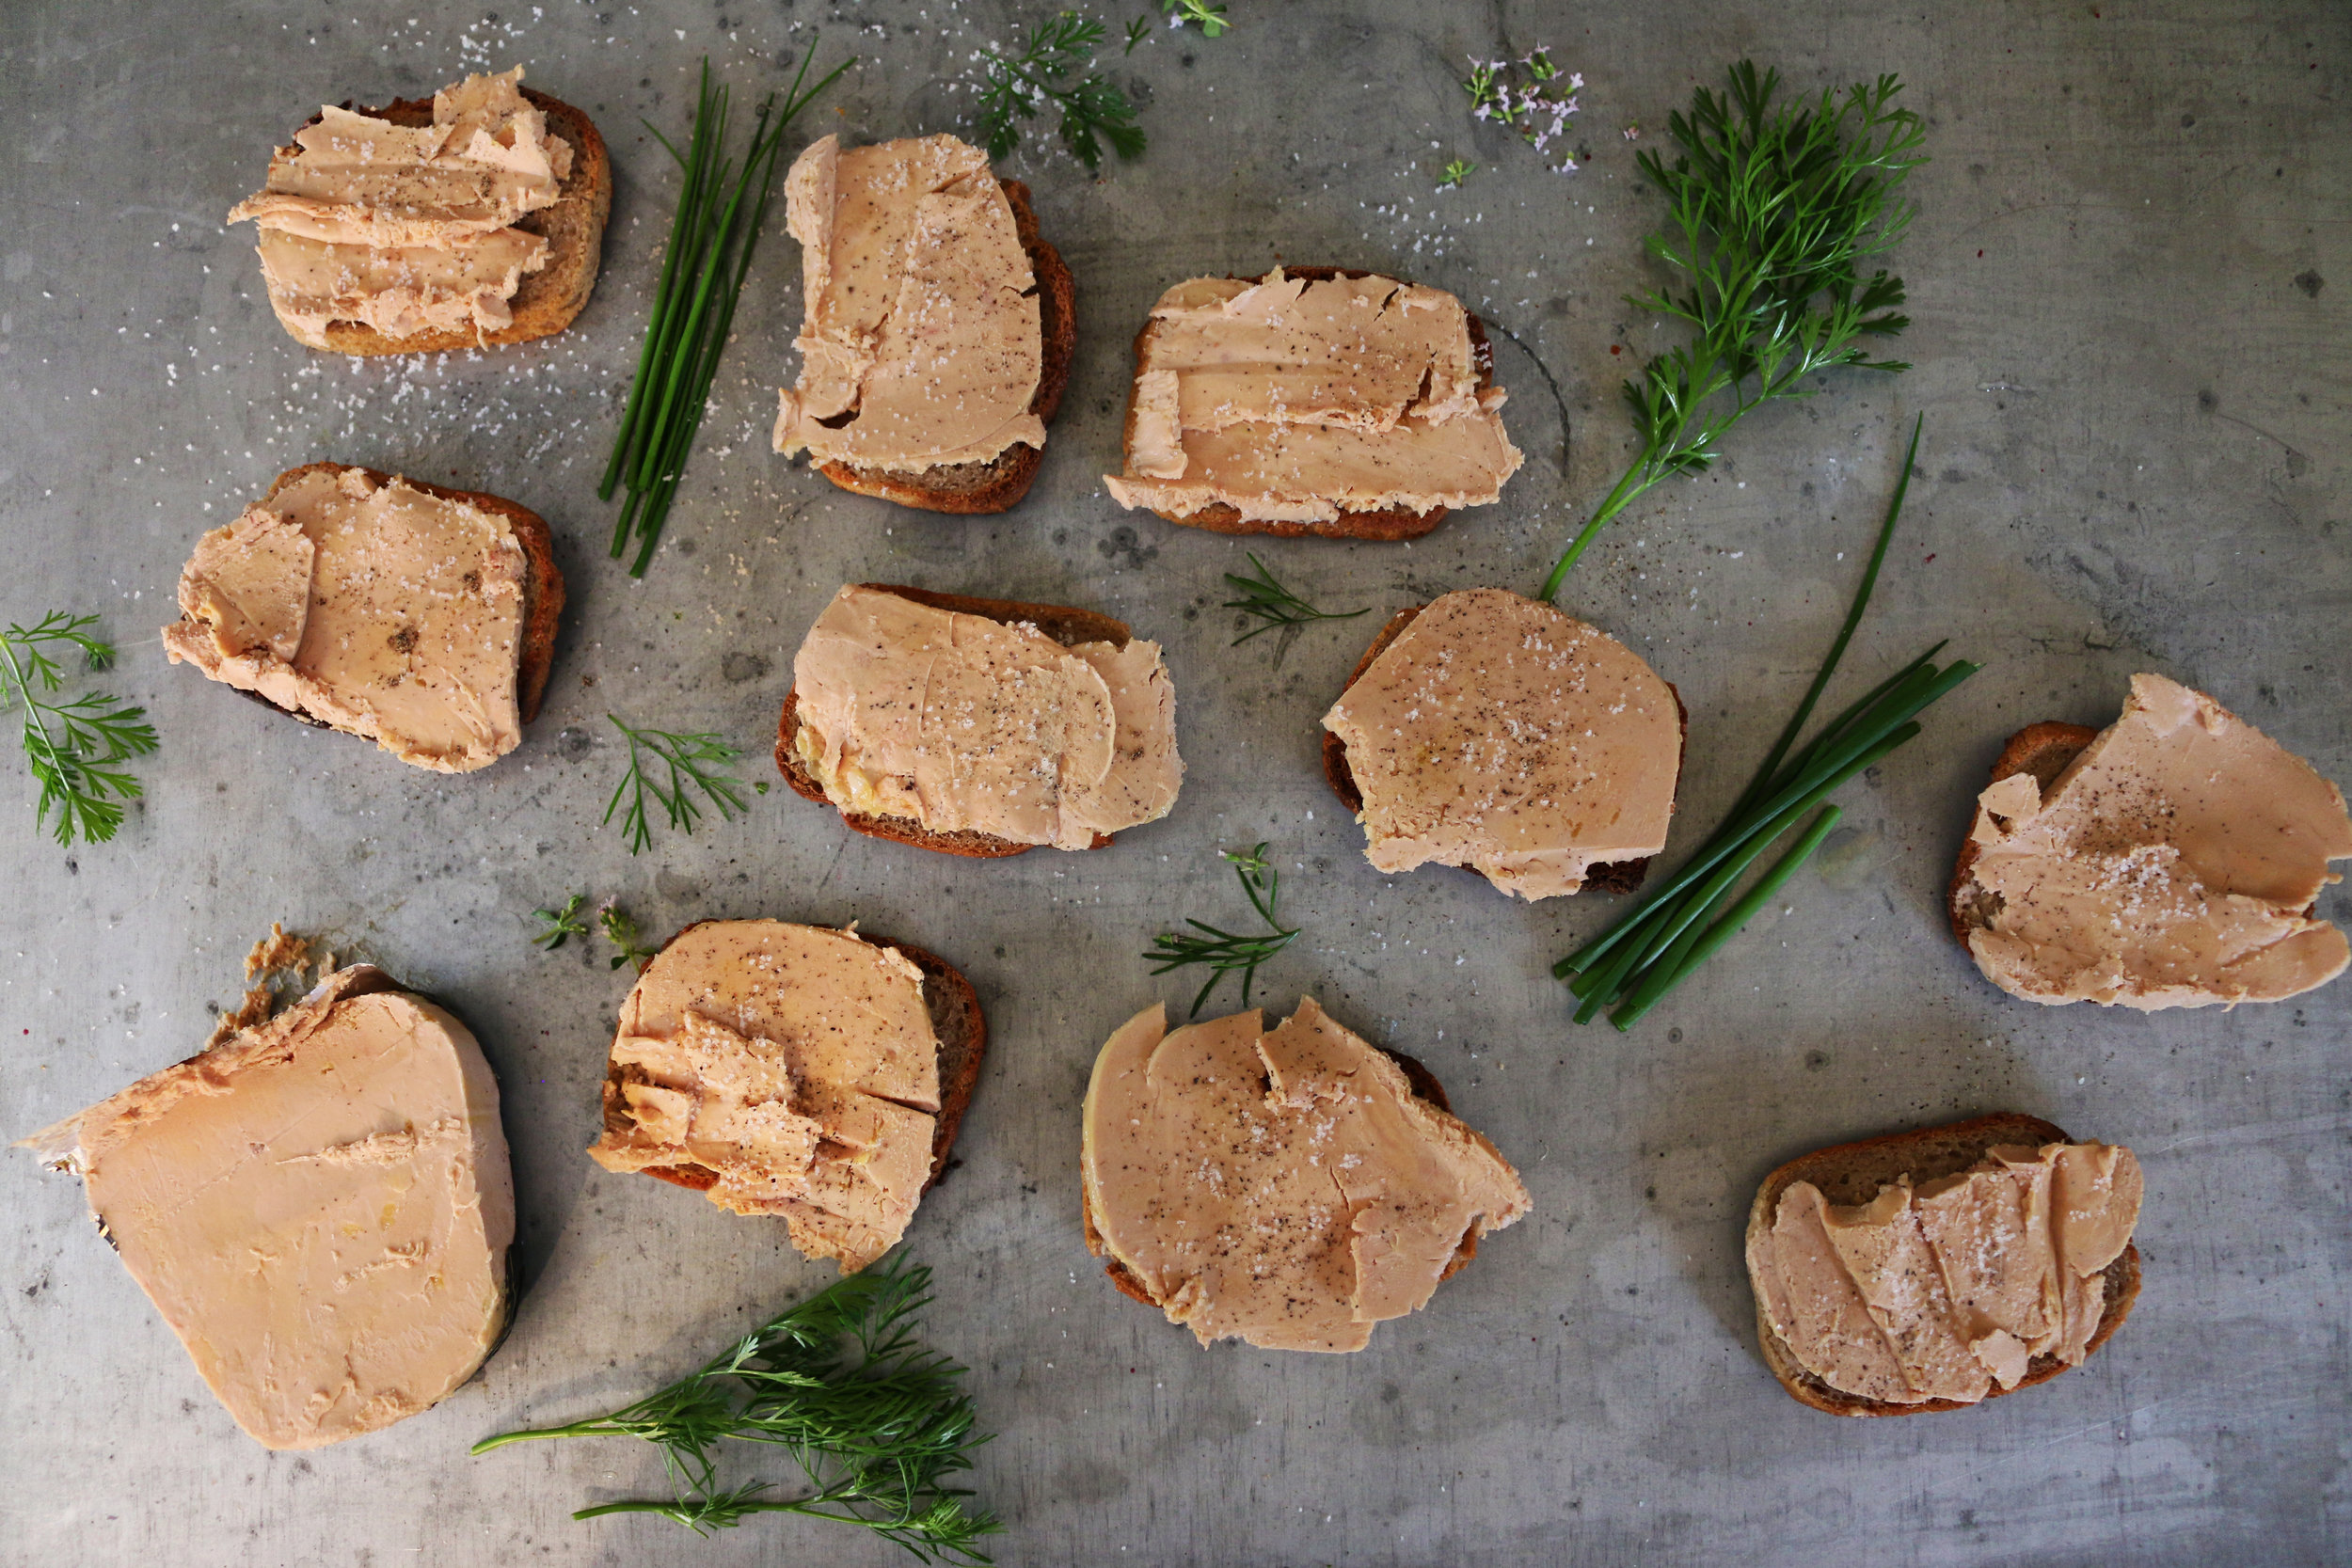 Foie gras on gluten free toasts with cracked pepper and large sea salt crystals from guérande.